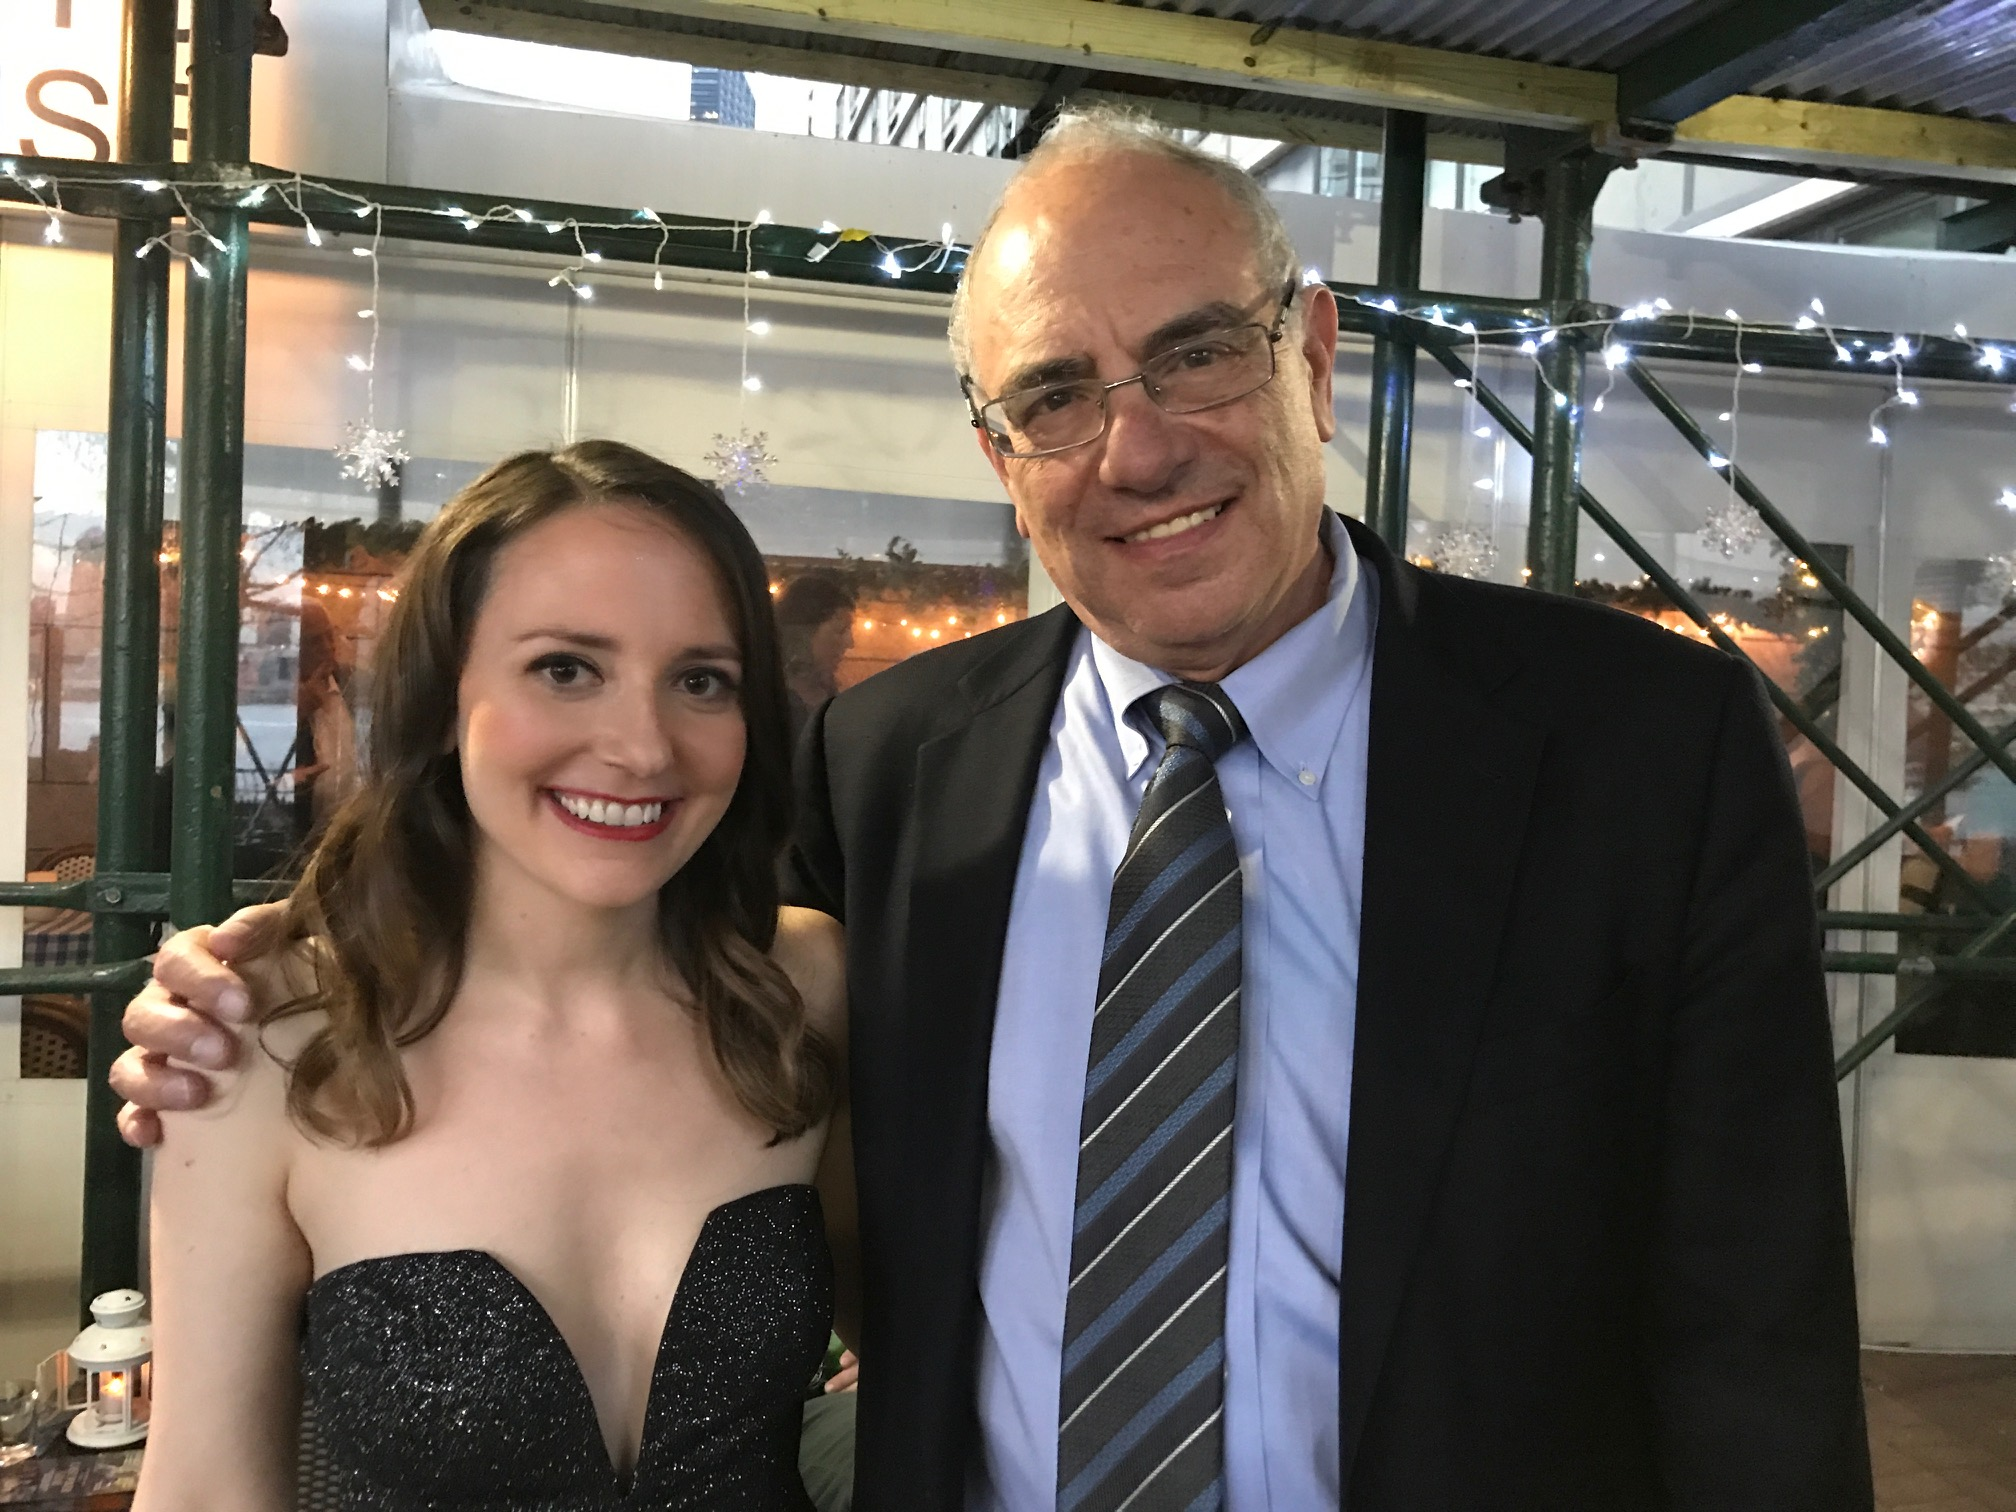 With the director, Howard Weiner.